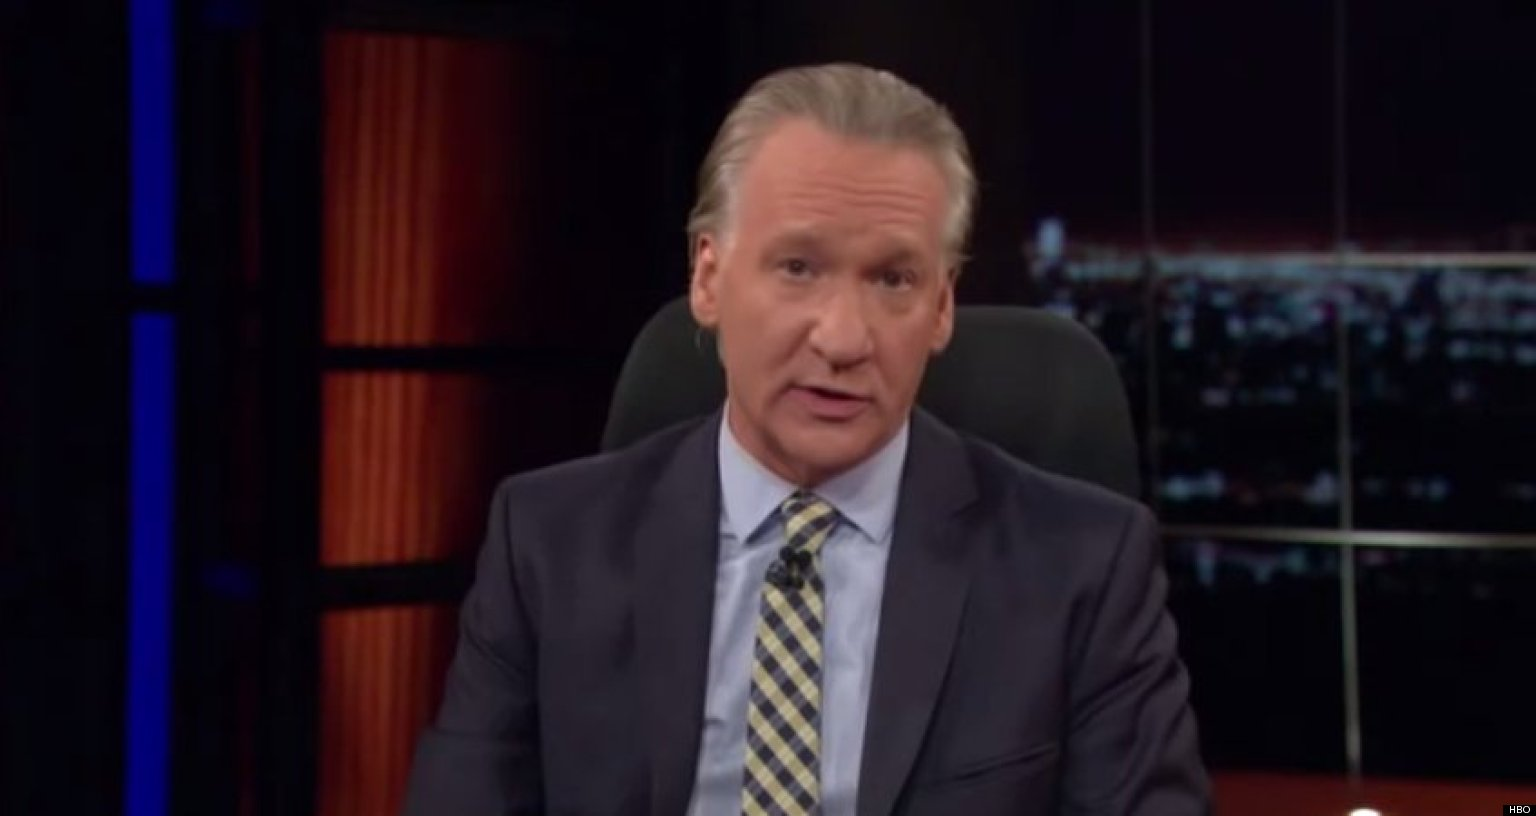 WATCH: Maher Issues Stern Warning To U.S. 'War Mongers'